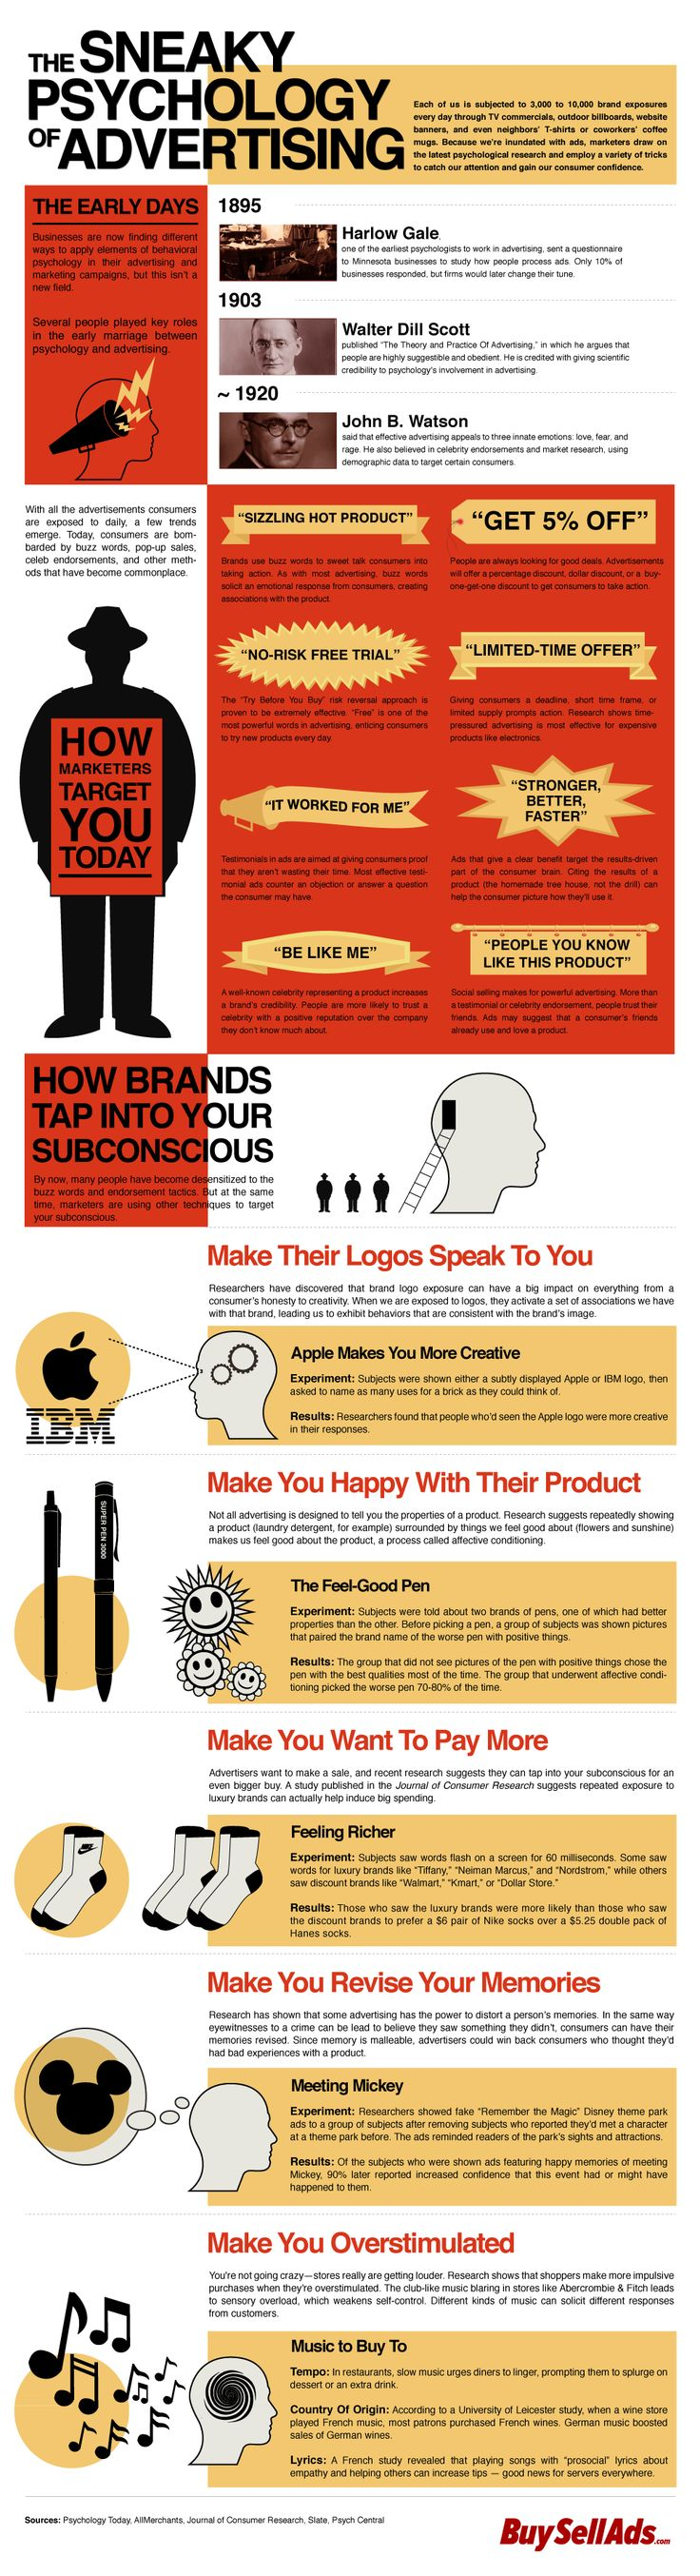 The Sneaky Psychology Of Advertising | We're confronted with thousands of brand exposures every single day. Everywhere you turn there's another logo or advertisement for a product or service. In order to get their message heard, marketers have turned to the latest psychological research. Find out how they target your subconscious in the infographic below.